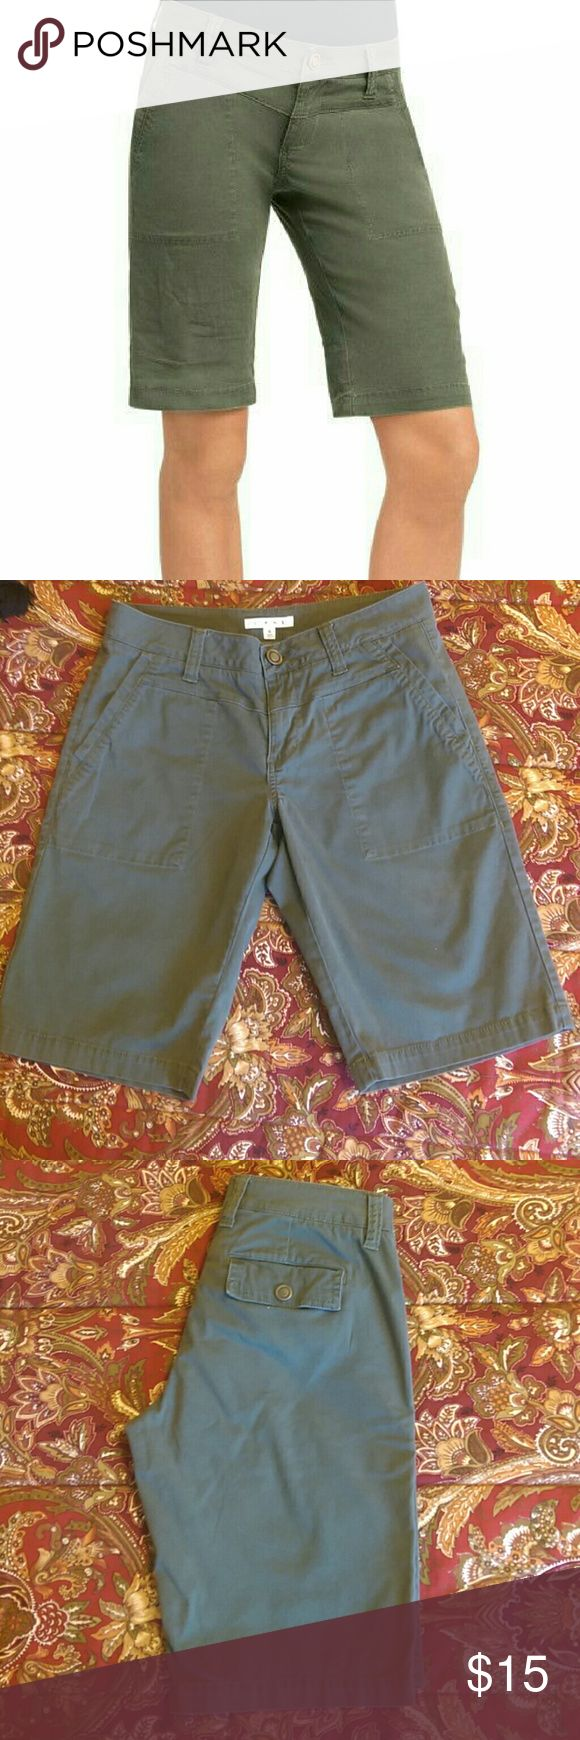 """CAbi  """"Ivy League"""" Army Green Shorts These are Bermuda walking shorts. Approx inseam length is 12"""". Great CAbi quality and fit! Style #816. CAbi Shorts Bermudas"""